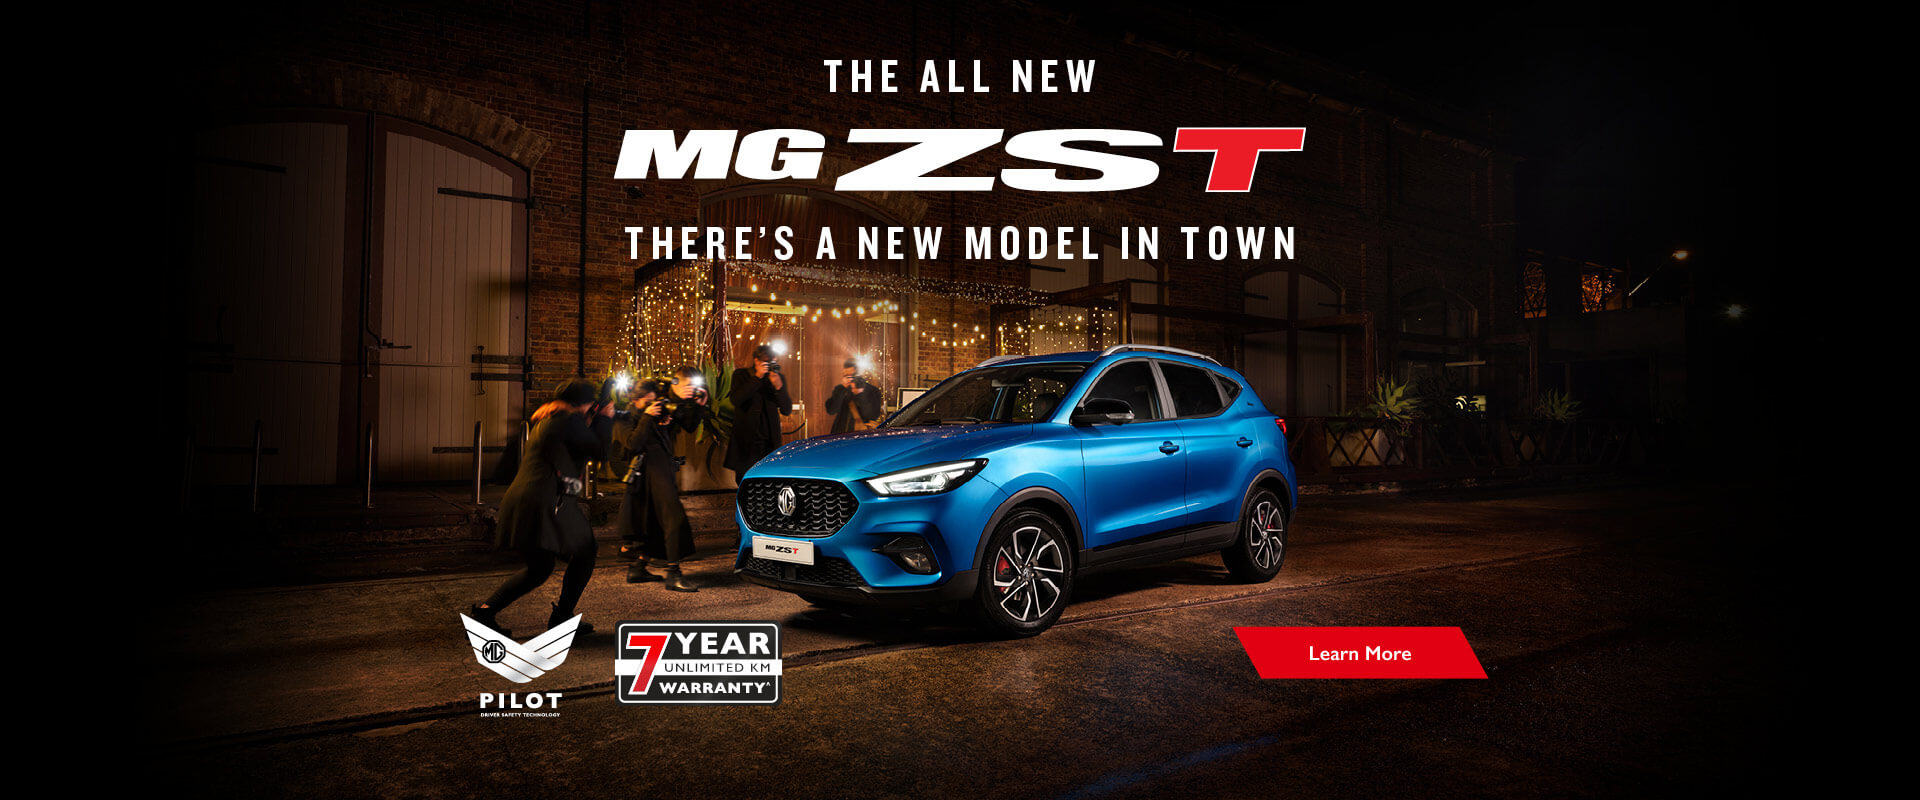 MG ZST - THERE'S A NEW MODEL IN TOWN